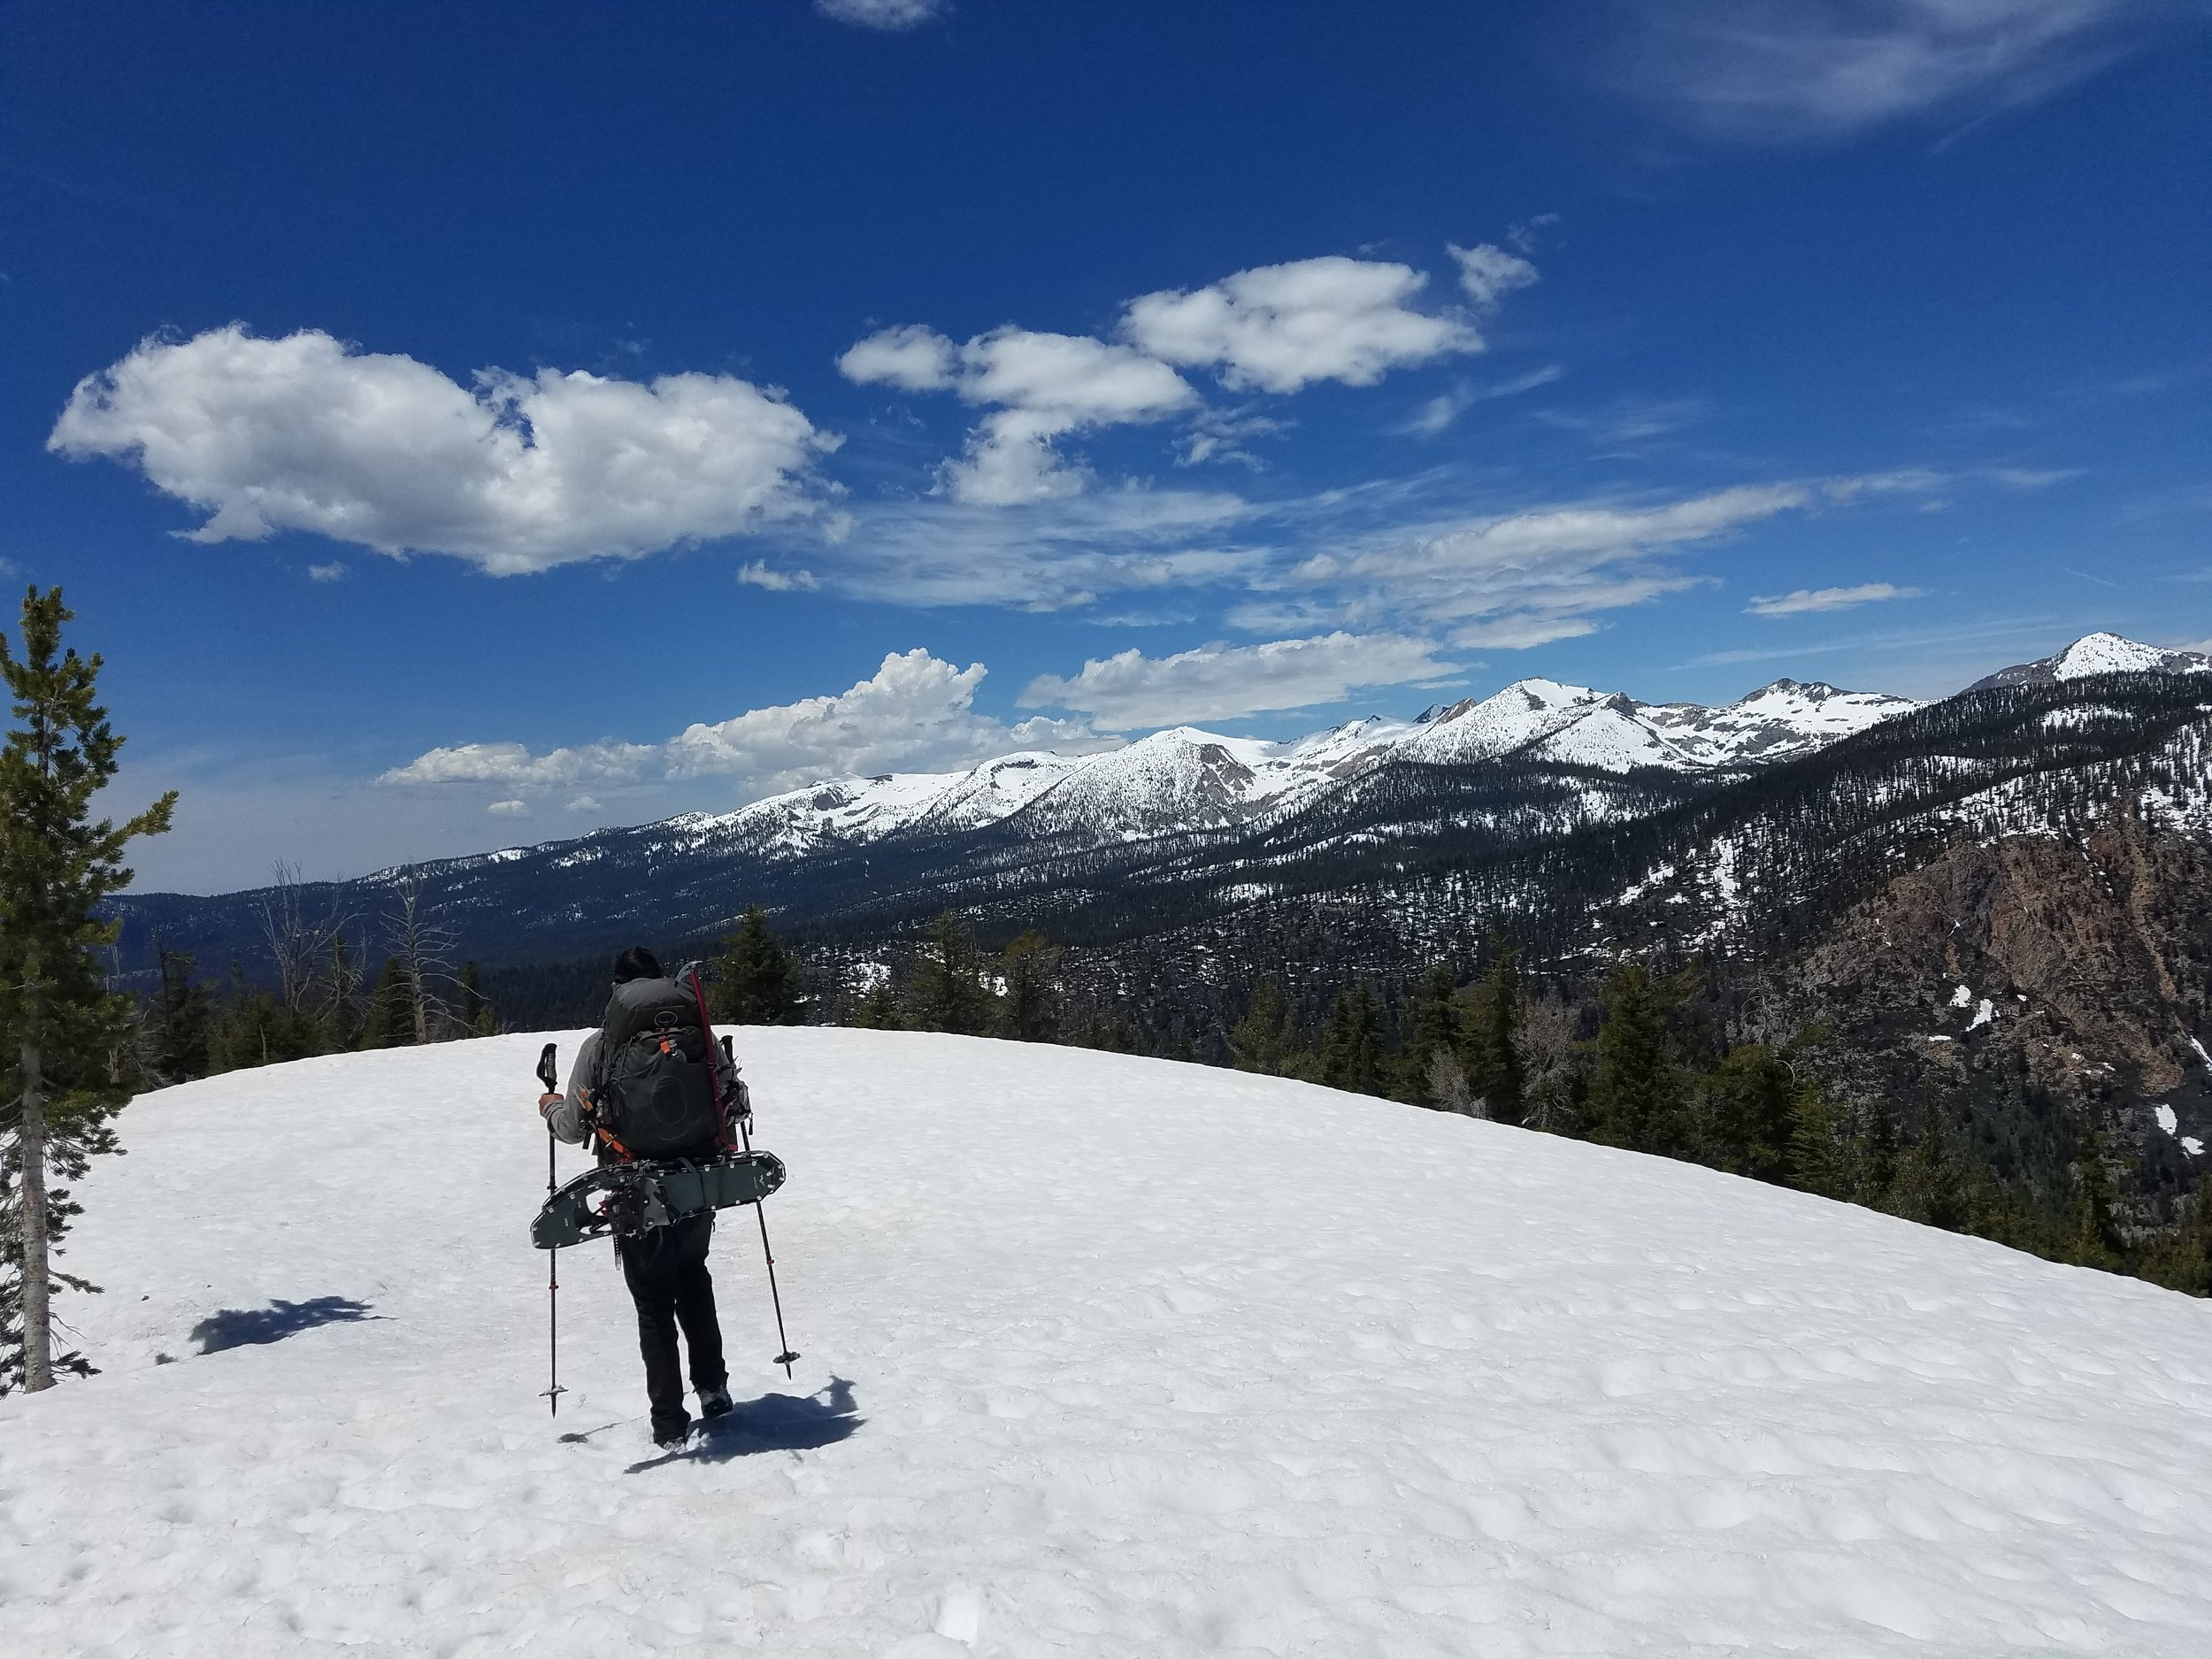 On top of Bear Ridge before the steep descent to camp.